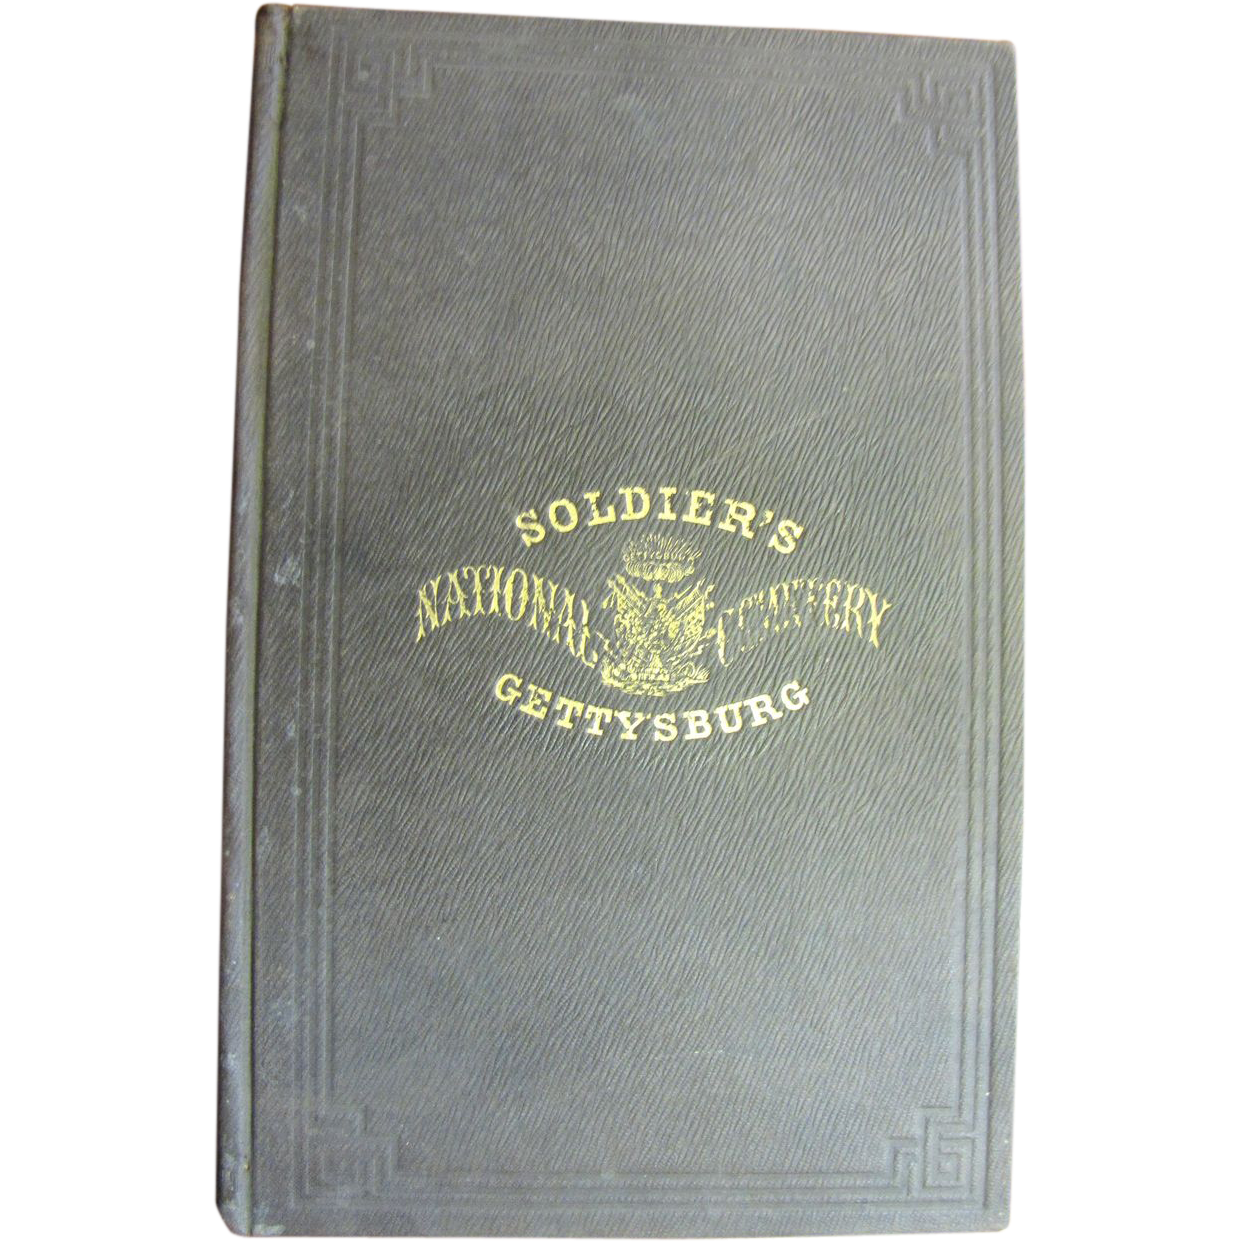 Soldier's National Cemetery Gettysburg 1864 Select Comittee Report Including  Abraham Lincoln's Address